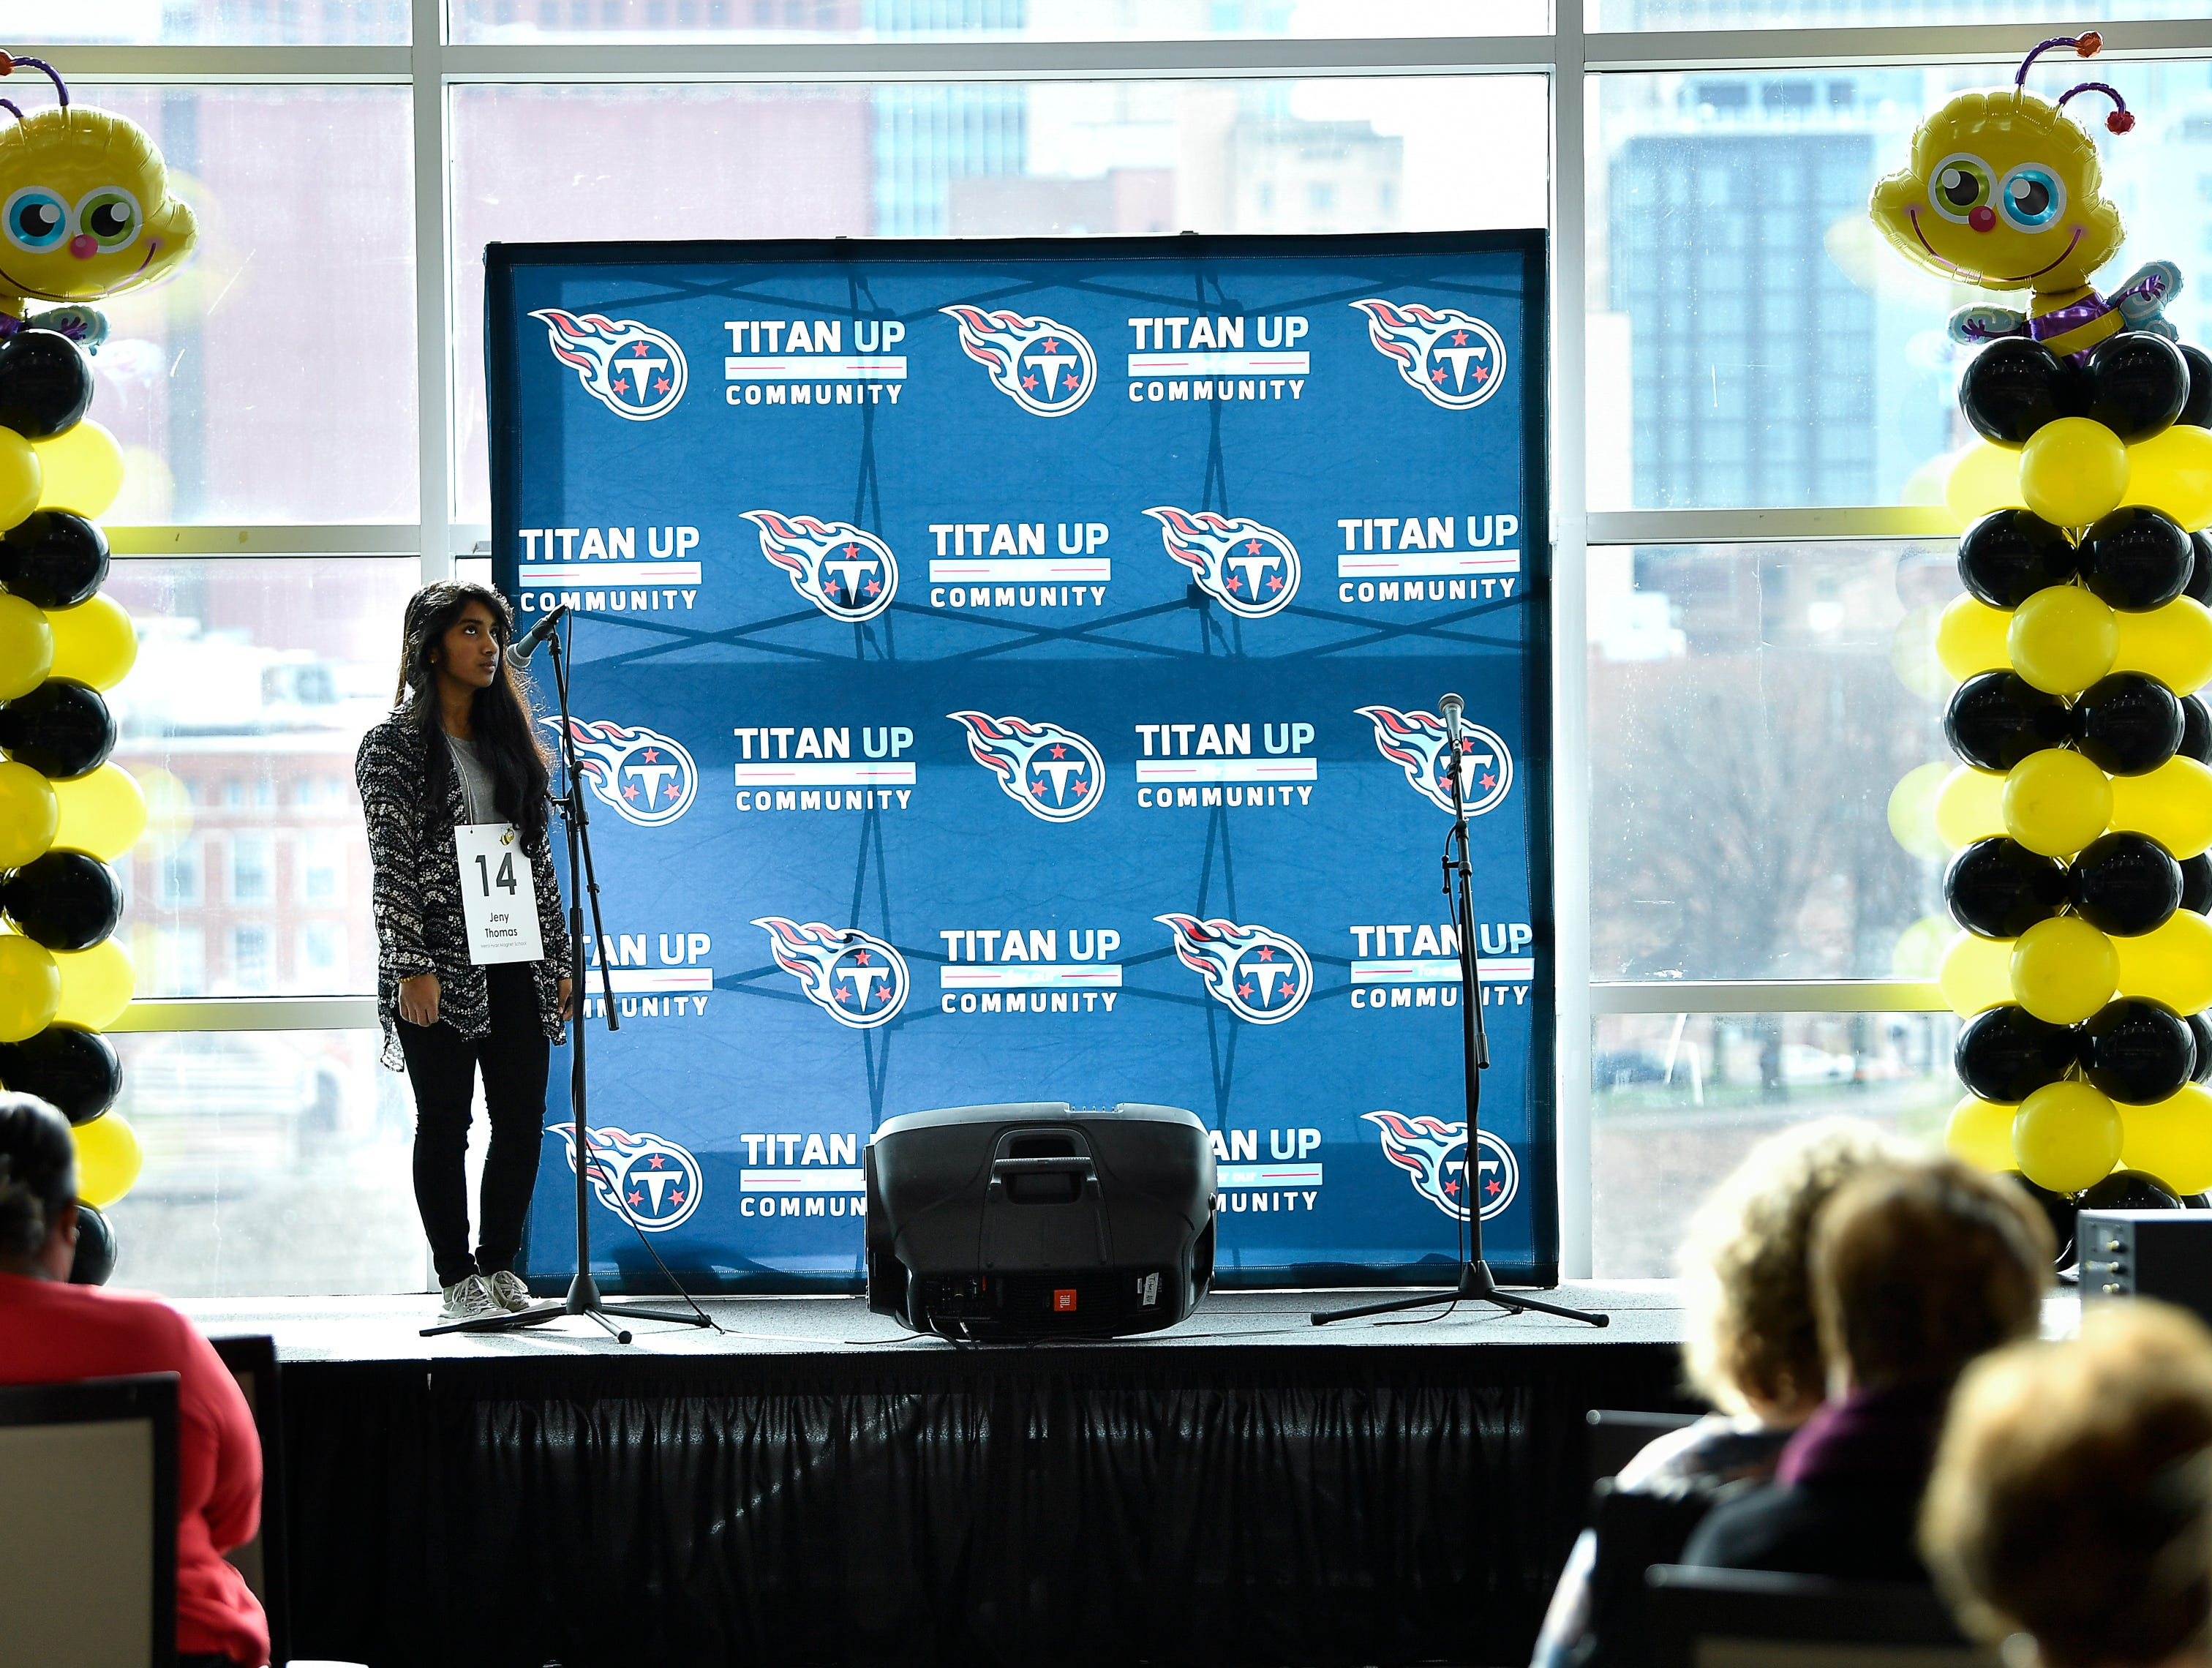 Jeny Thomas competes in the Tennessee Titans Regional Spelling Bee at Nissan Stadium Saturday, Feb. 16, 2019 in Nashville, Tenn.